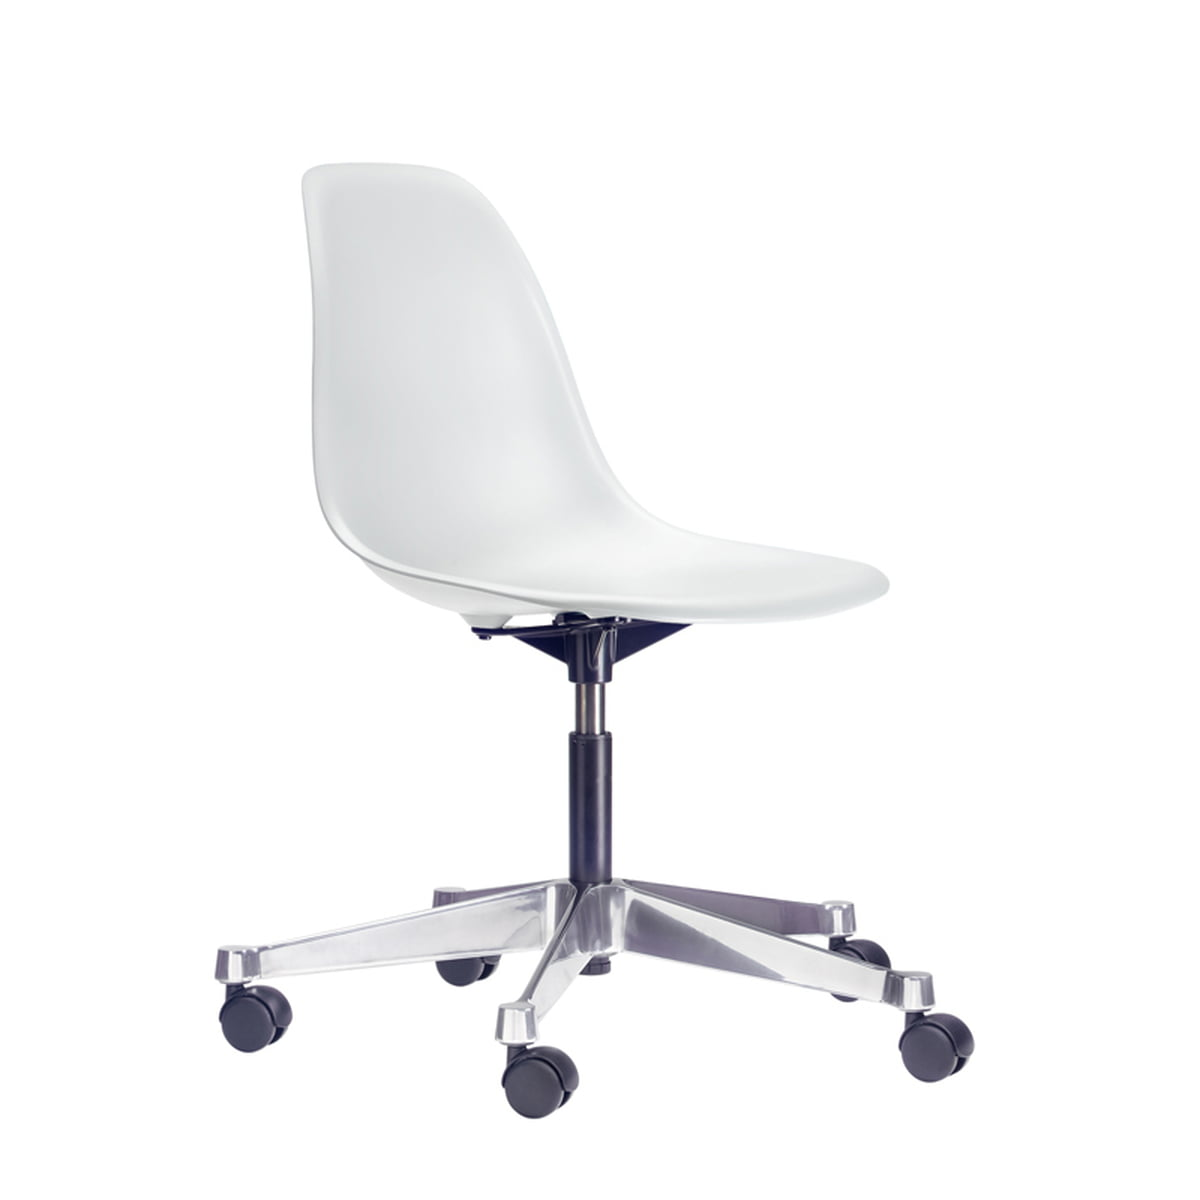 Vitra Eames Plastic Side Chair Pscc White